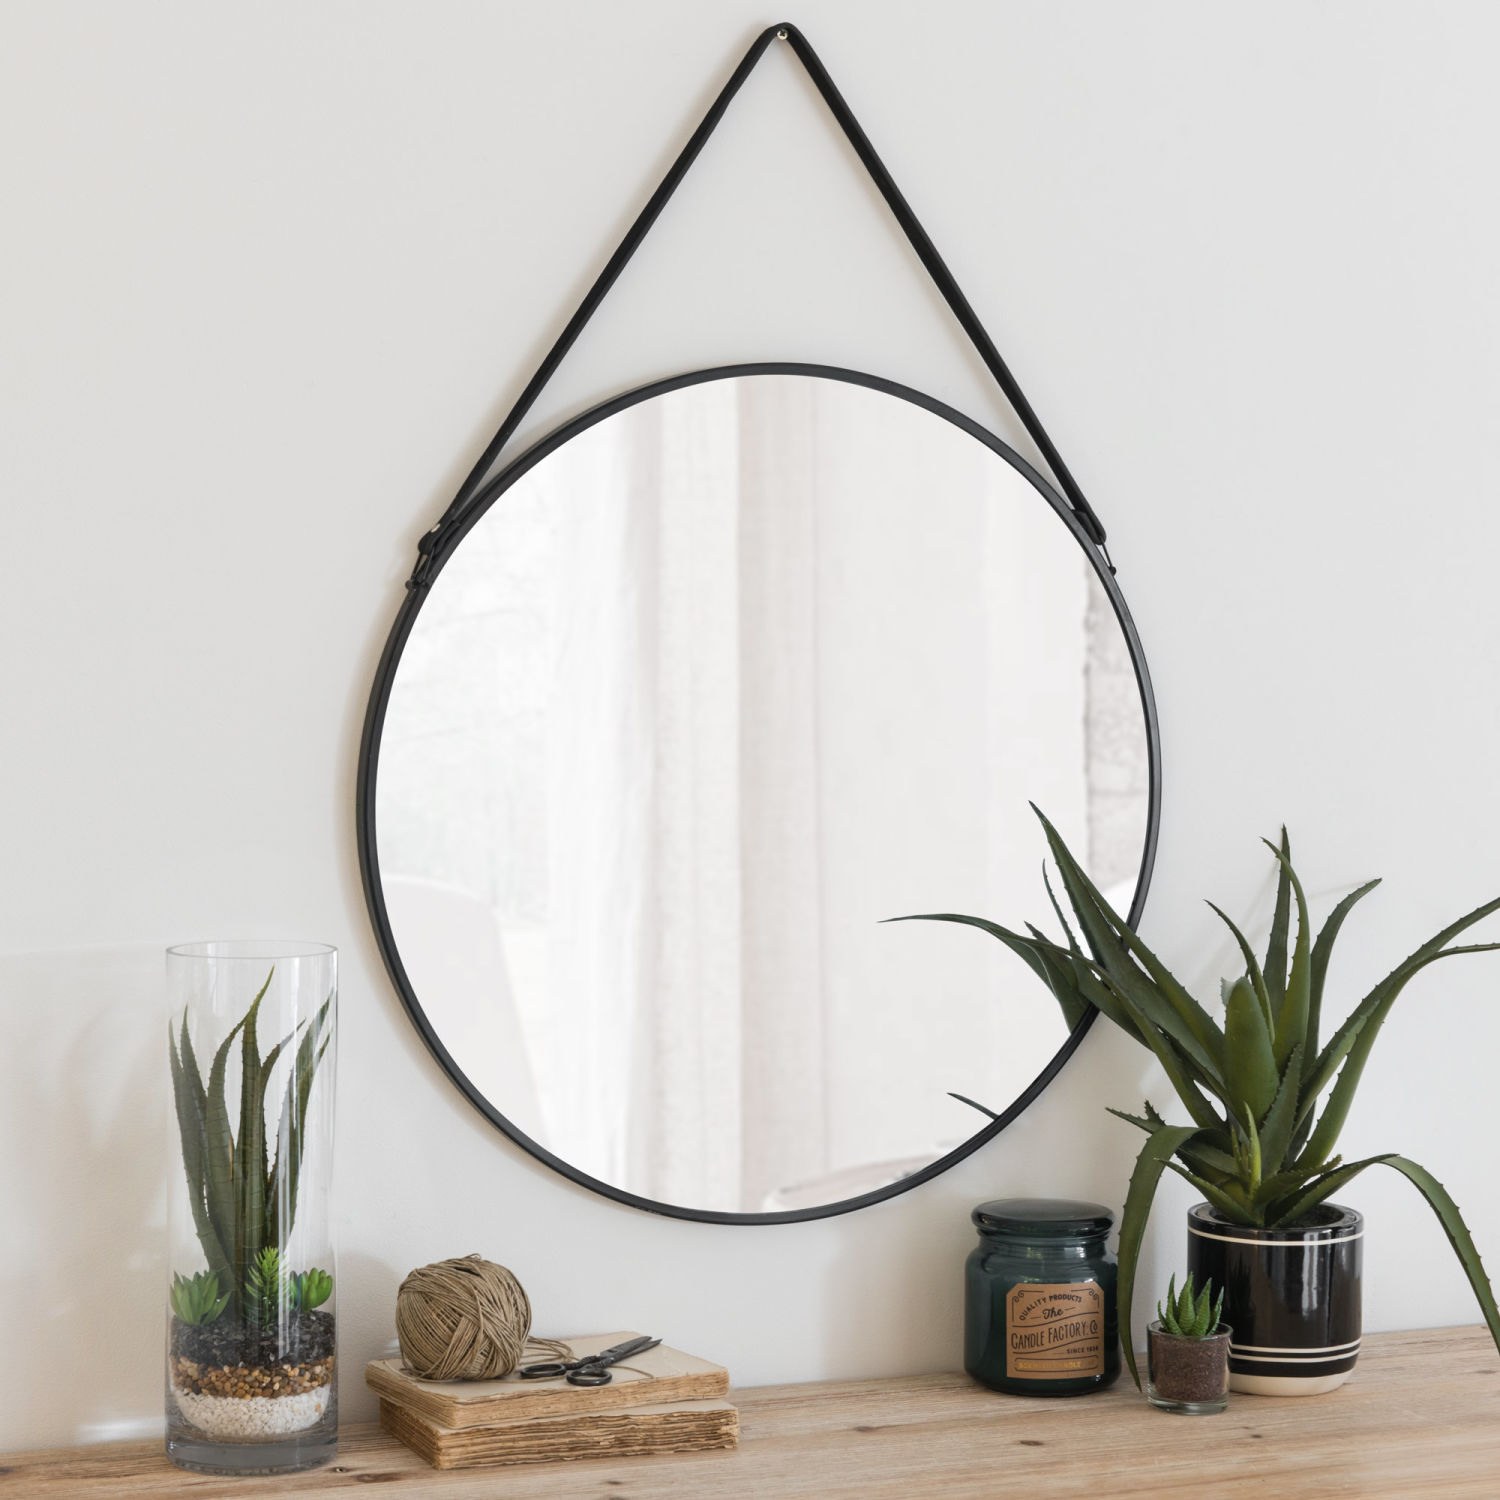 miroir rond en m tal noir d55 maisons du monde. Black Bedroom Furniture Sets. Home Design Ideas